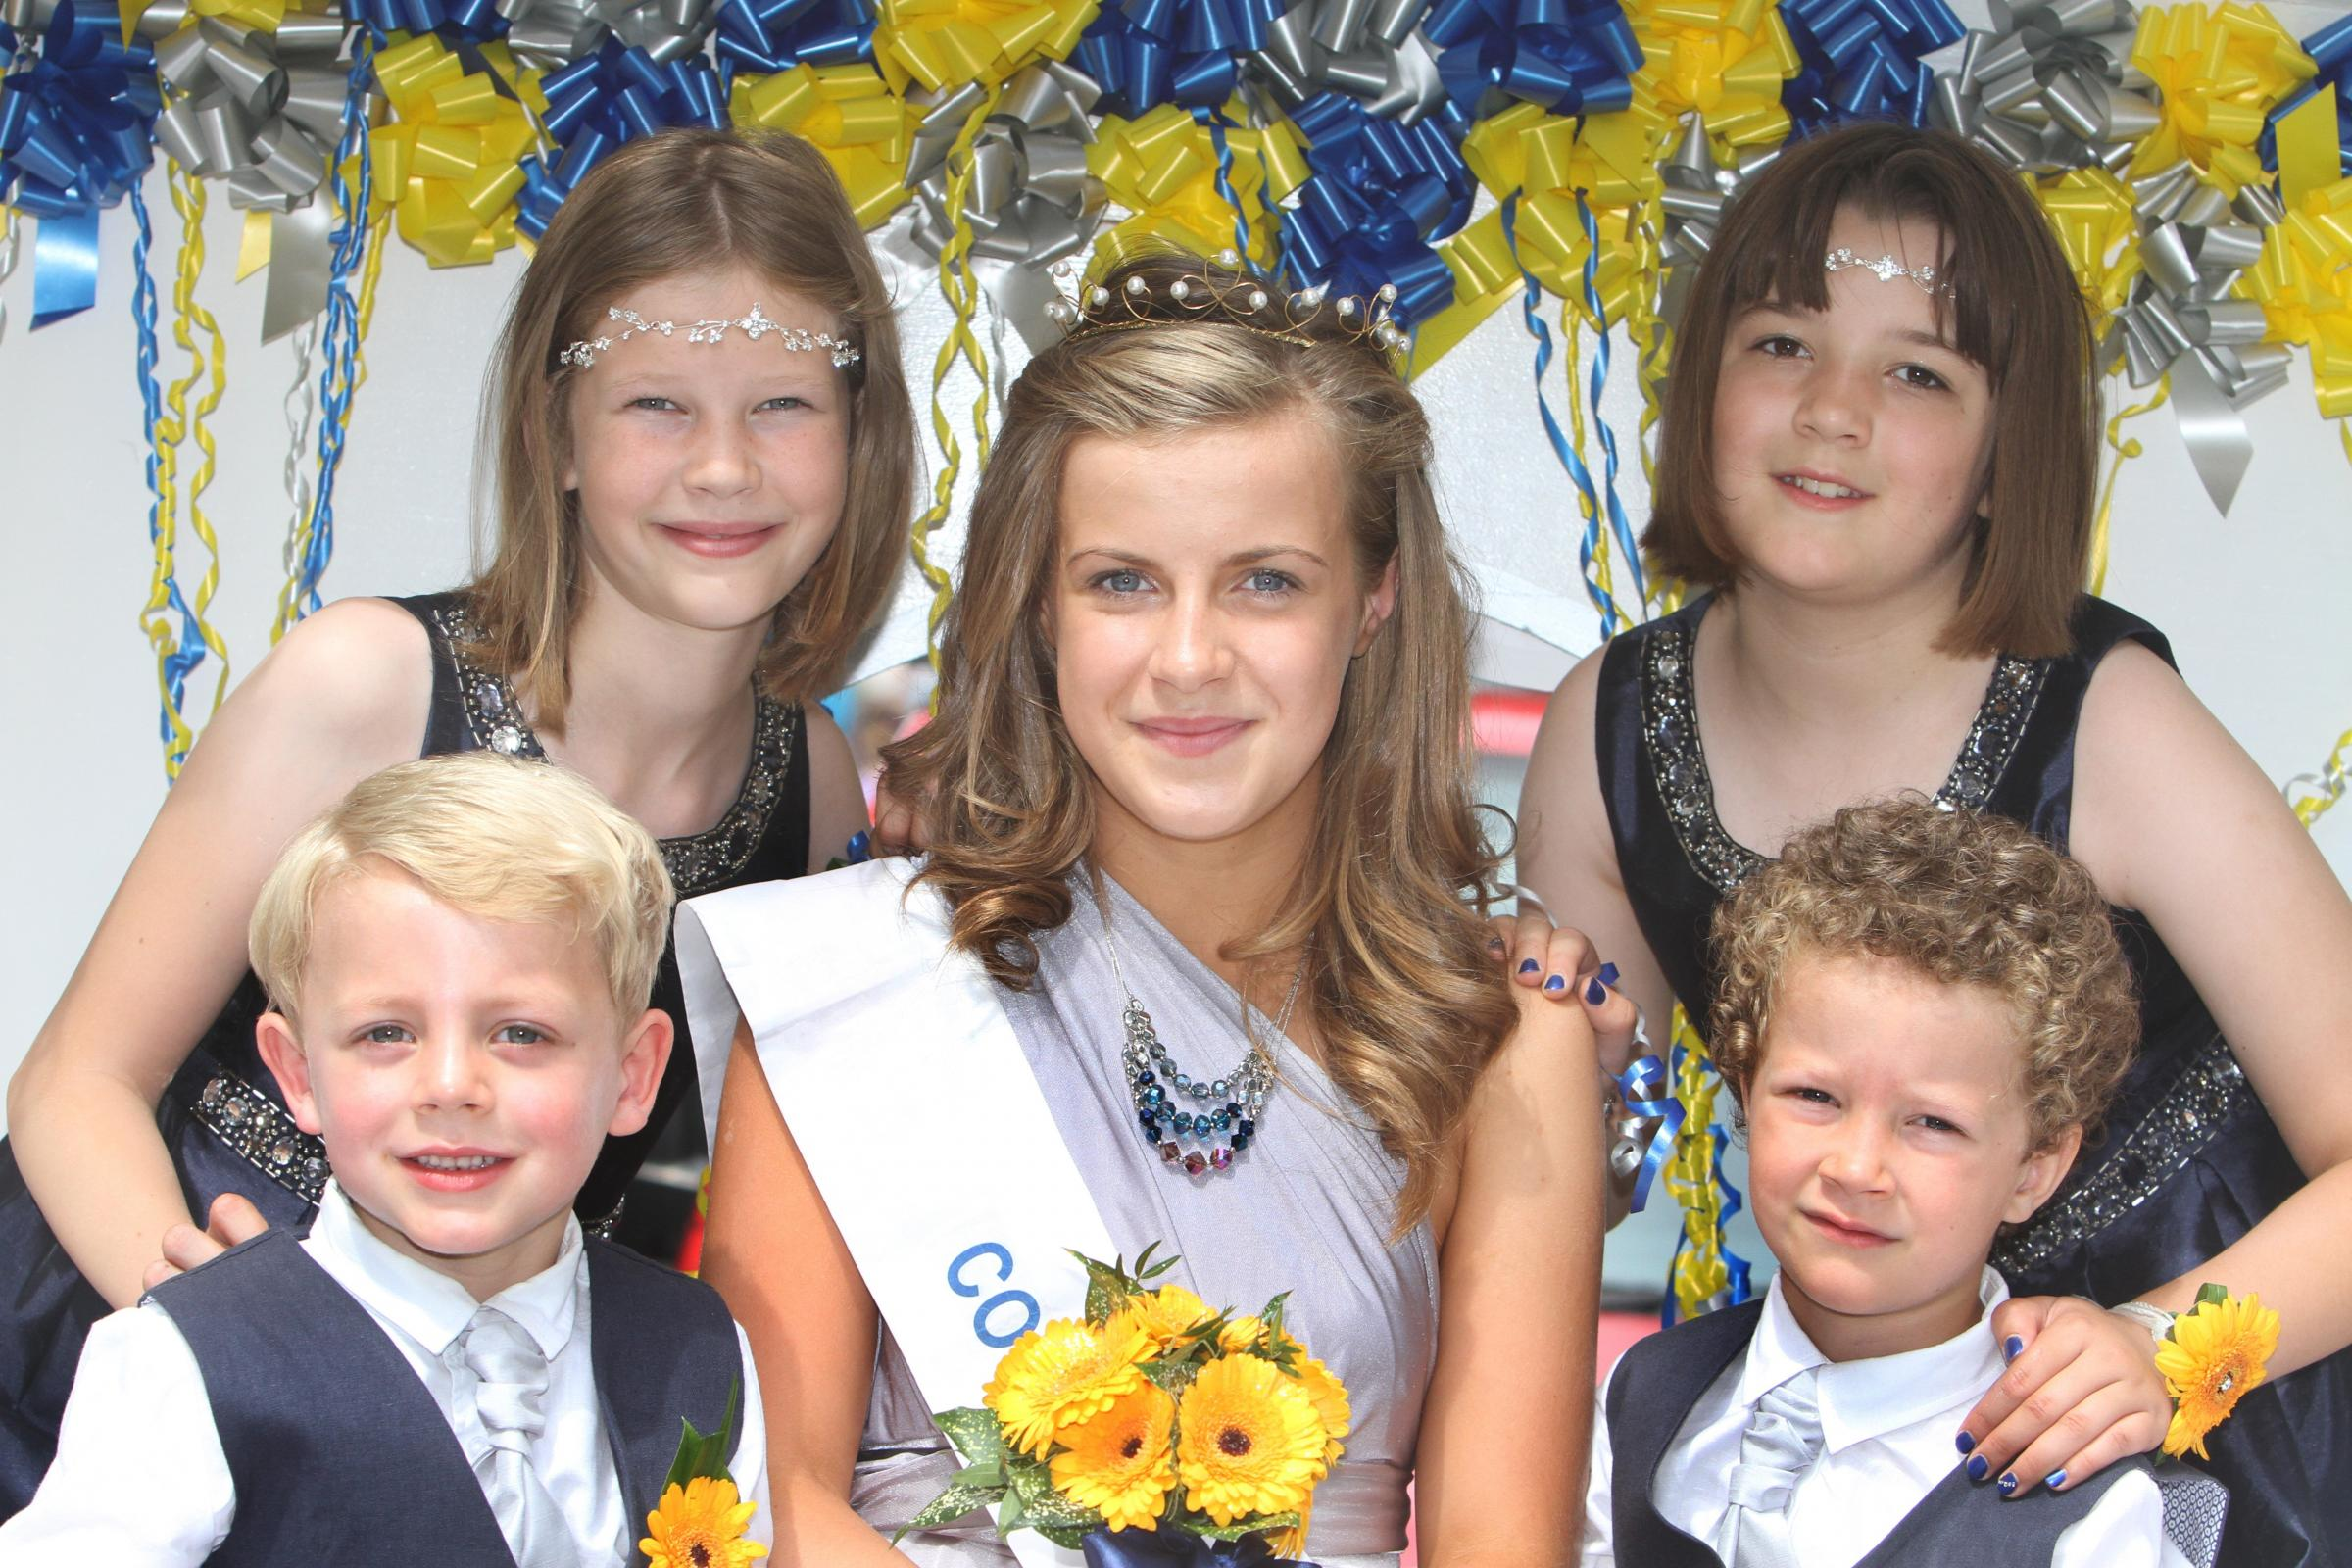 Hundreds party in the sunshine at Cowling Gala